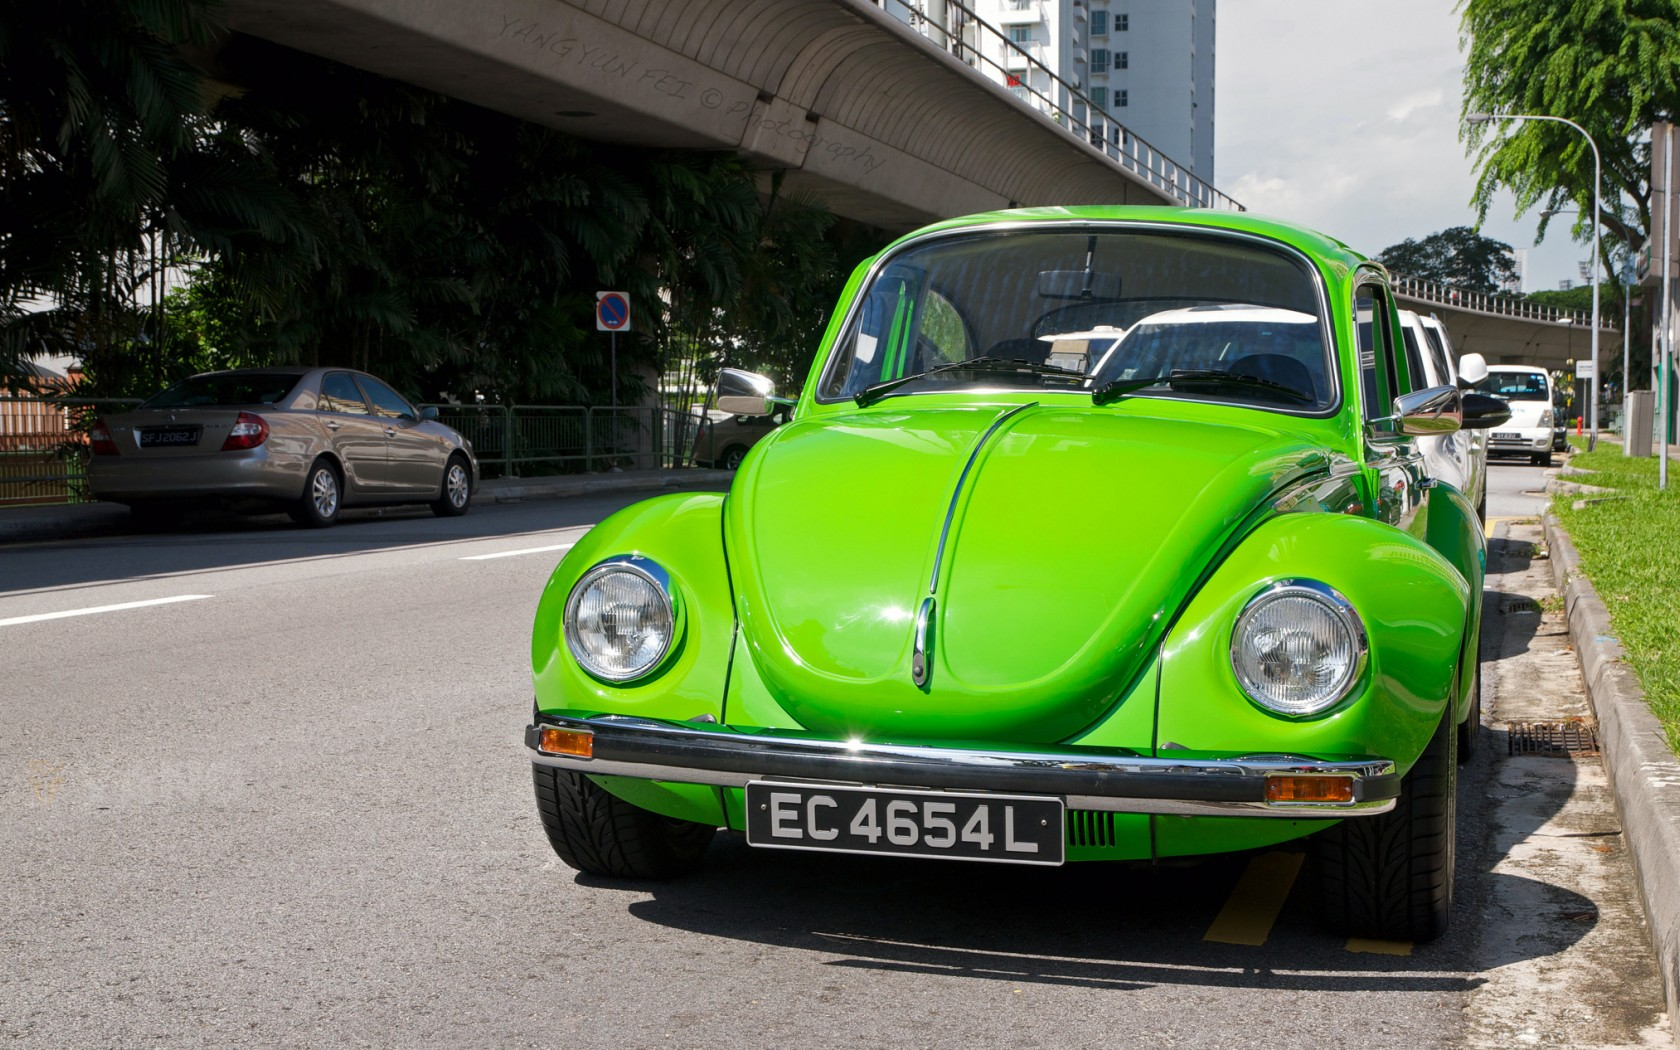 Green Volkswagen Beetle Wallpaper   HD 1680x1050